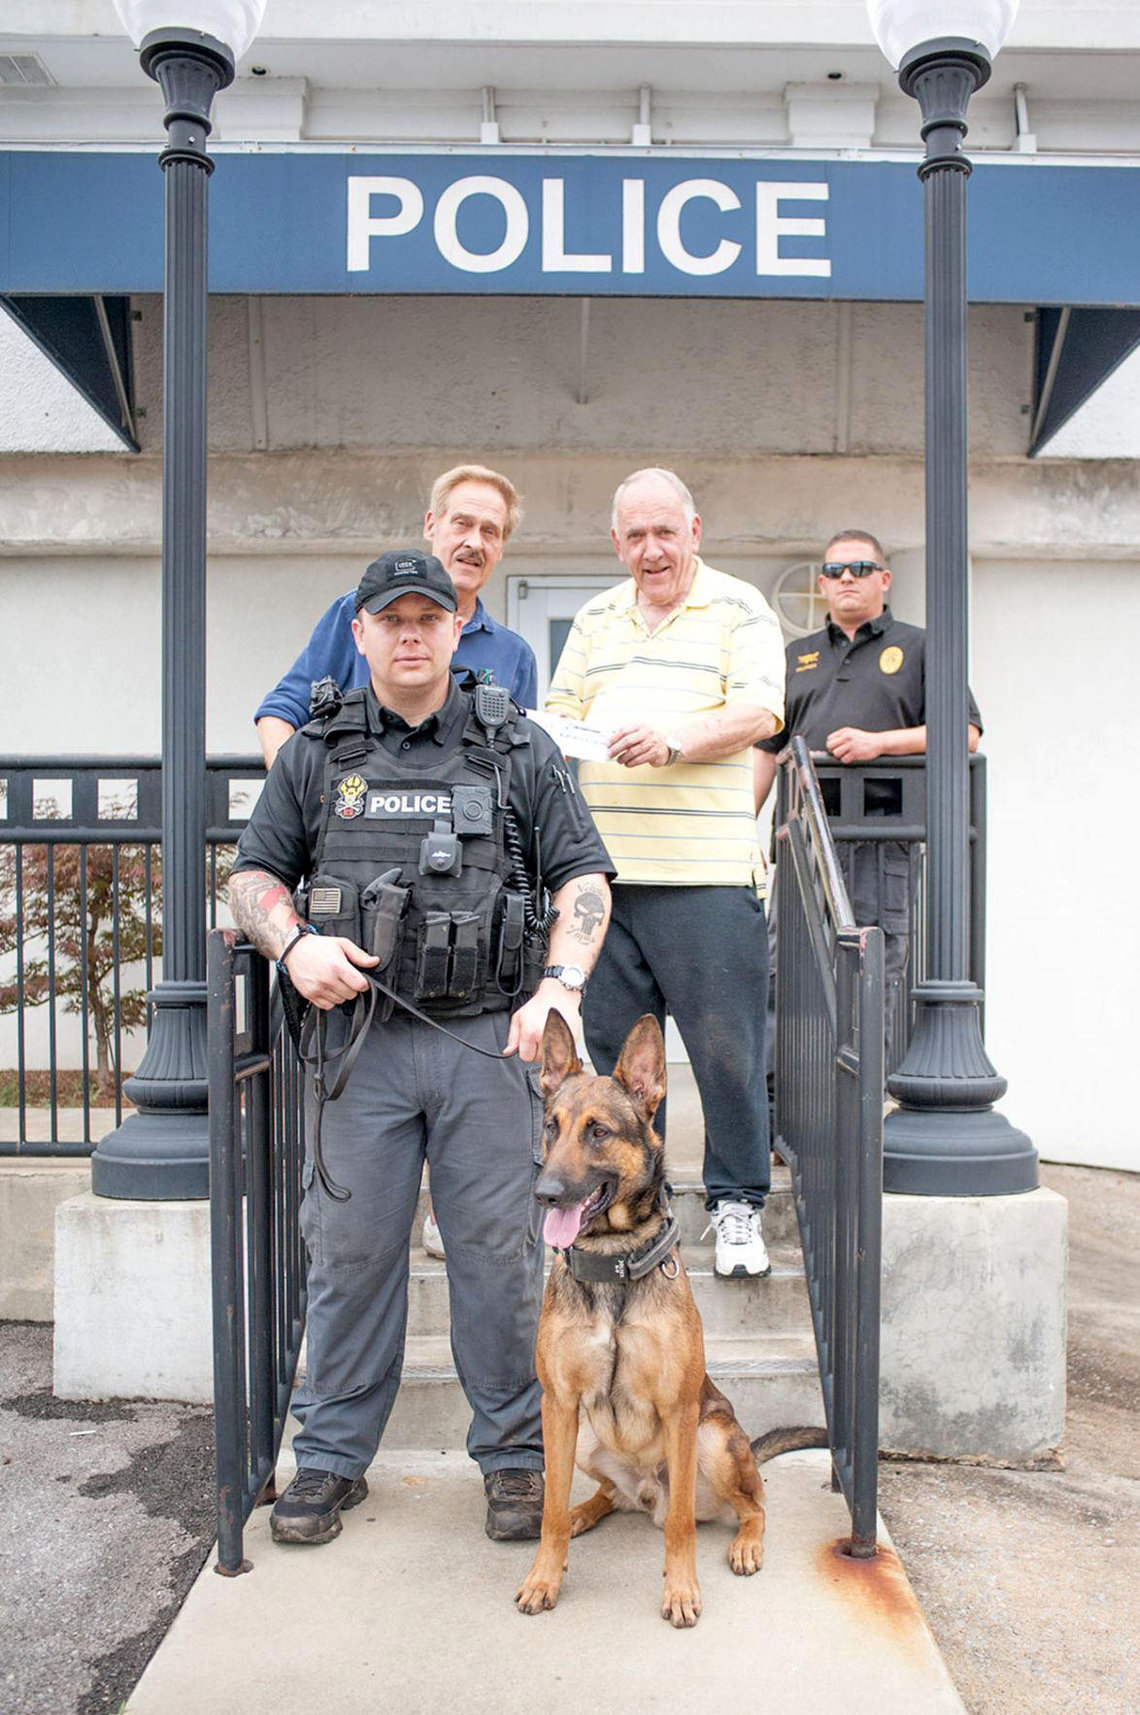 Officer Daniel Chesser, front, with his police dog, Andor, in Talladega, Alabama, in 2015.